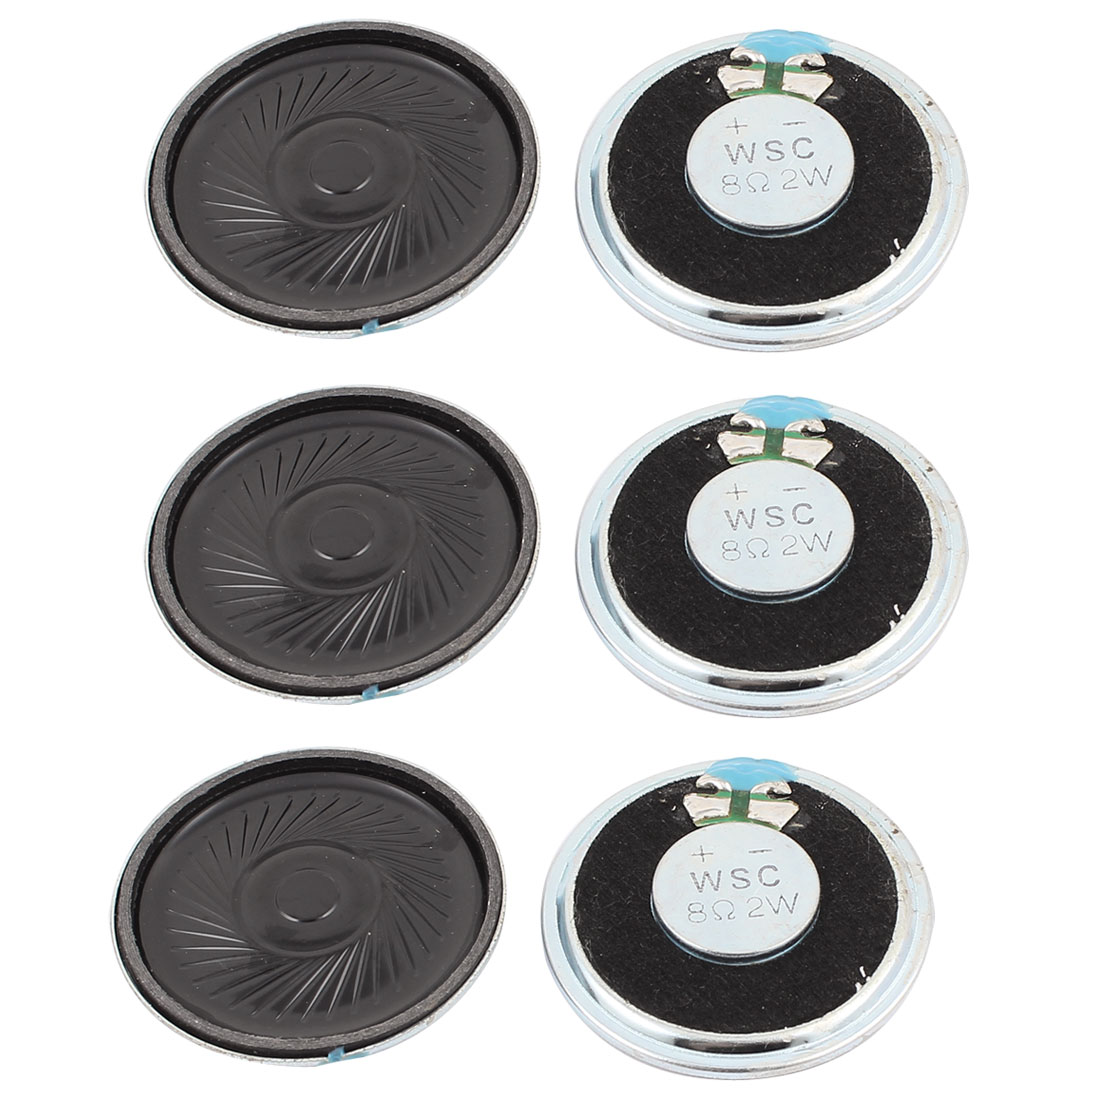 2W 40mm Diameter 8 Ohm Internal Mini Magnet Speaker Loudspeaker 6Pcs